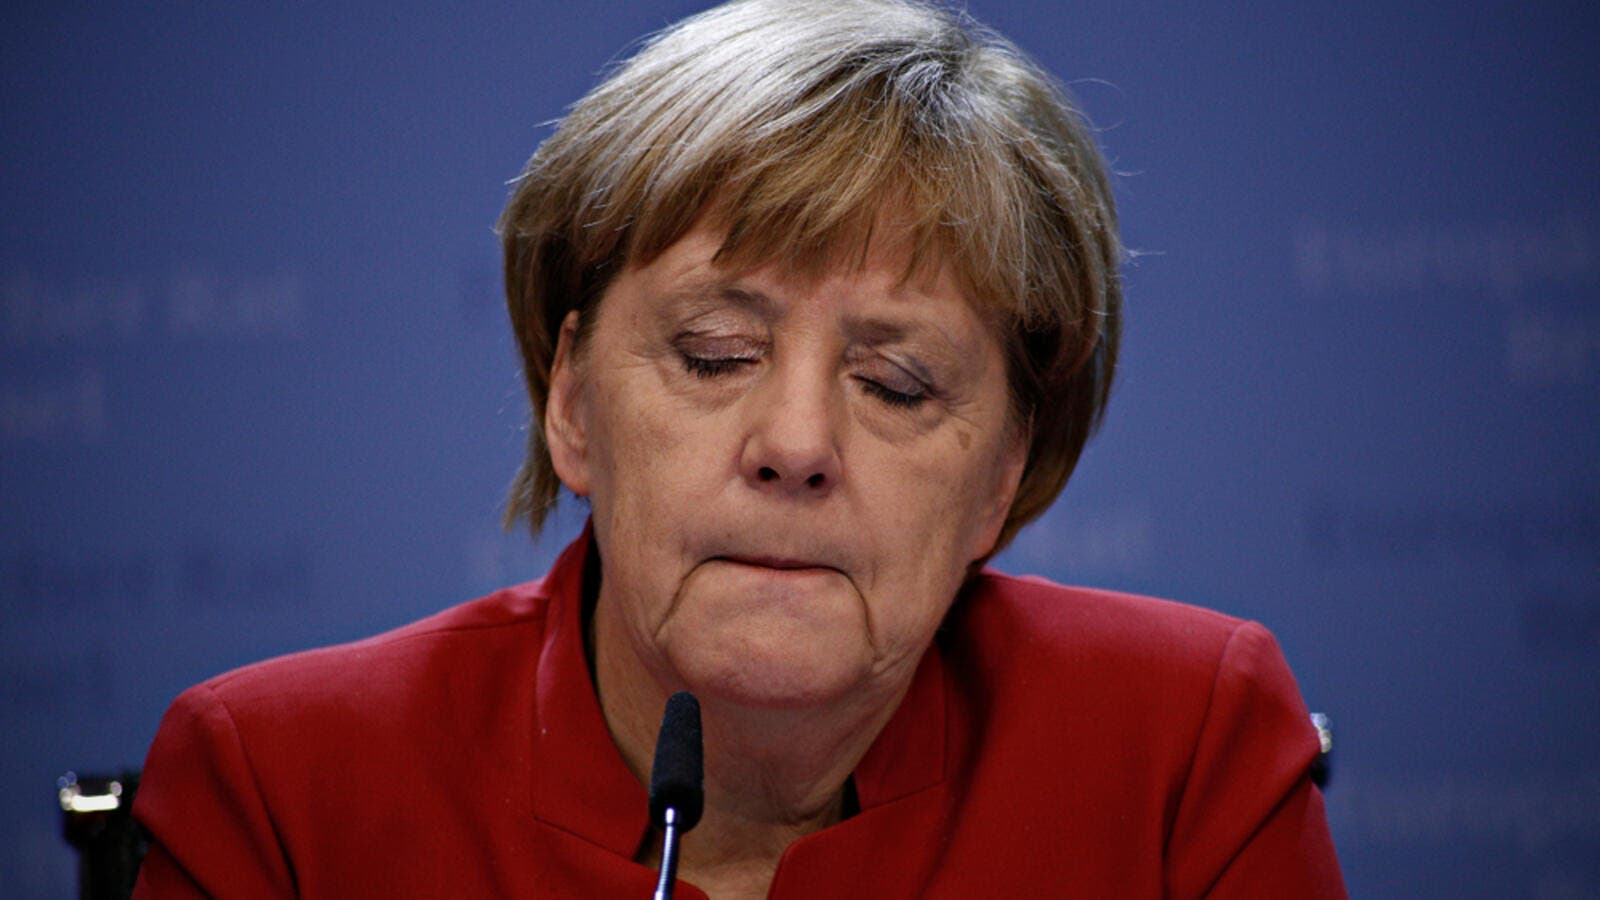 German Chancellor Angela Merkel  (Shutterstock/File Photo)